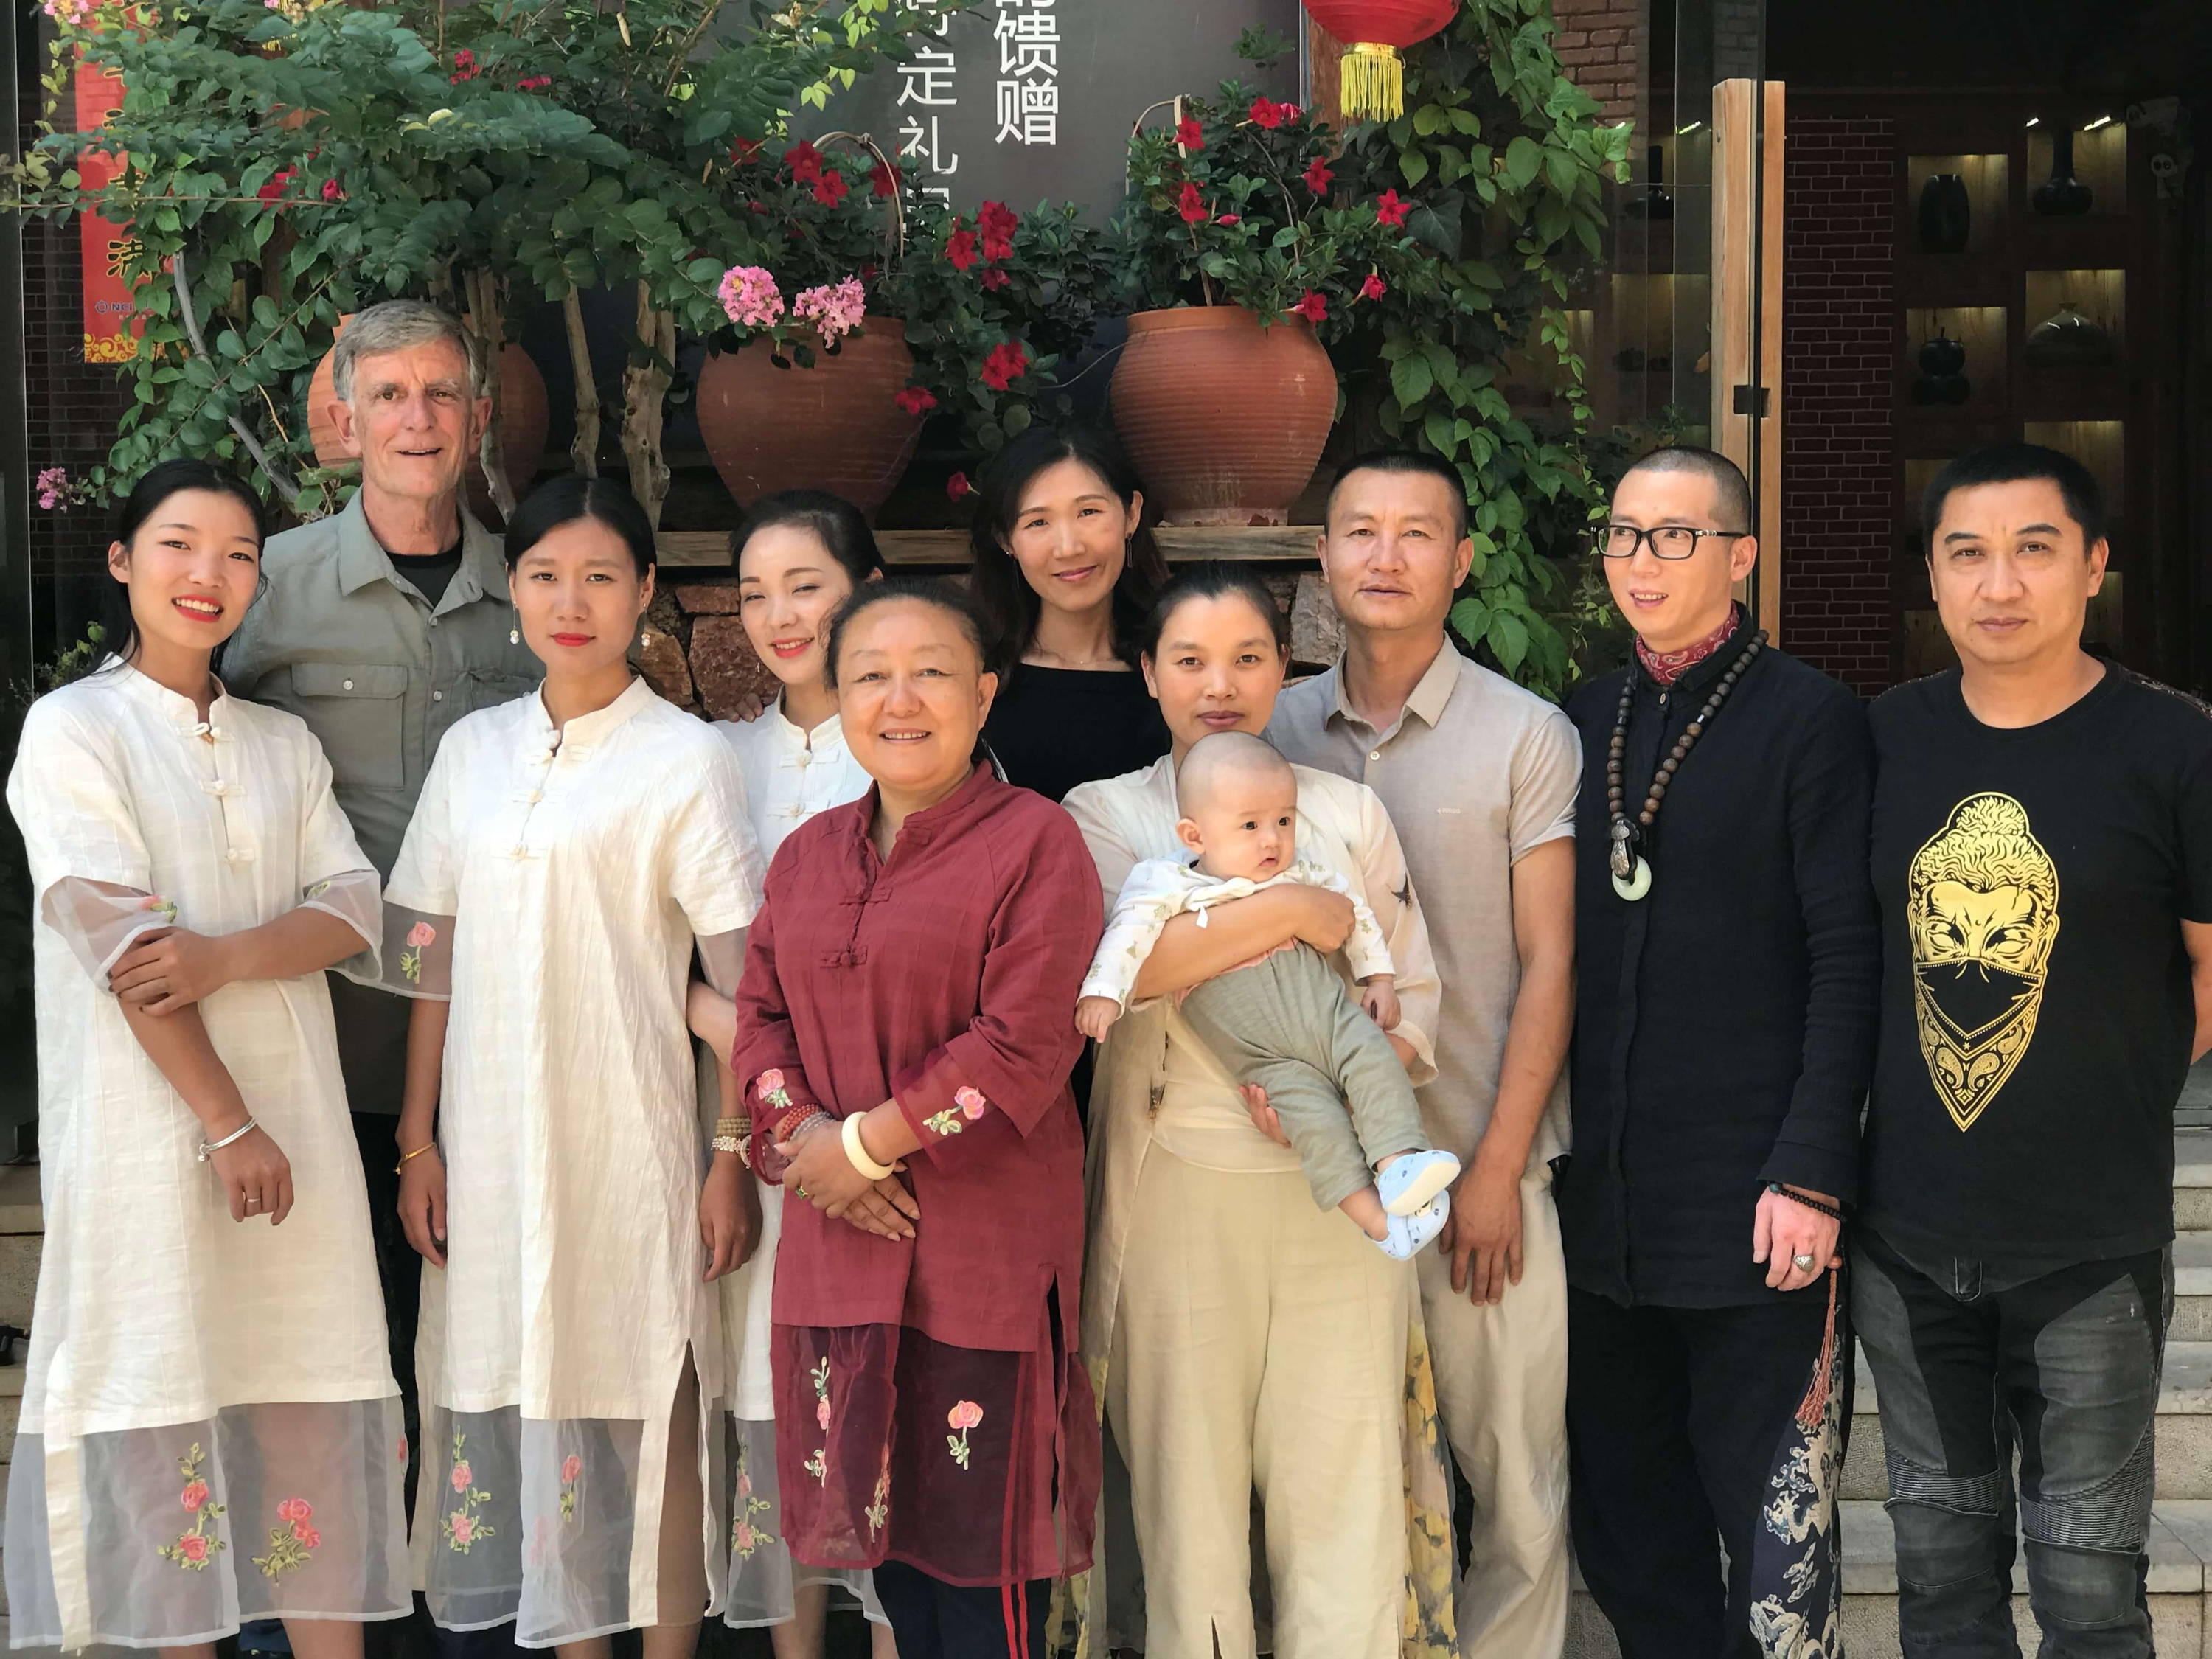 Staff of Hundred Years of Spring in Jian Shui